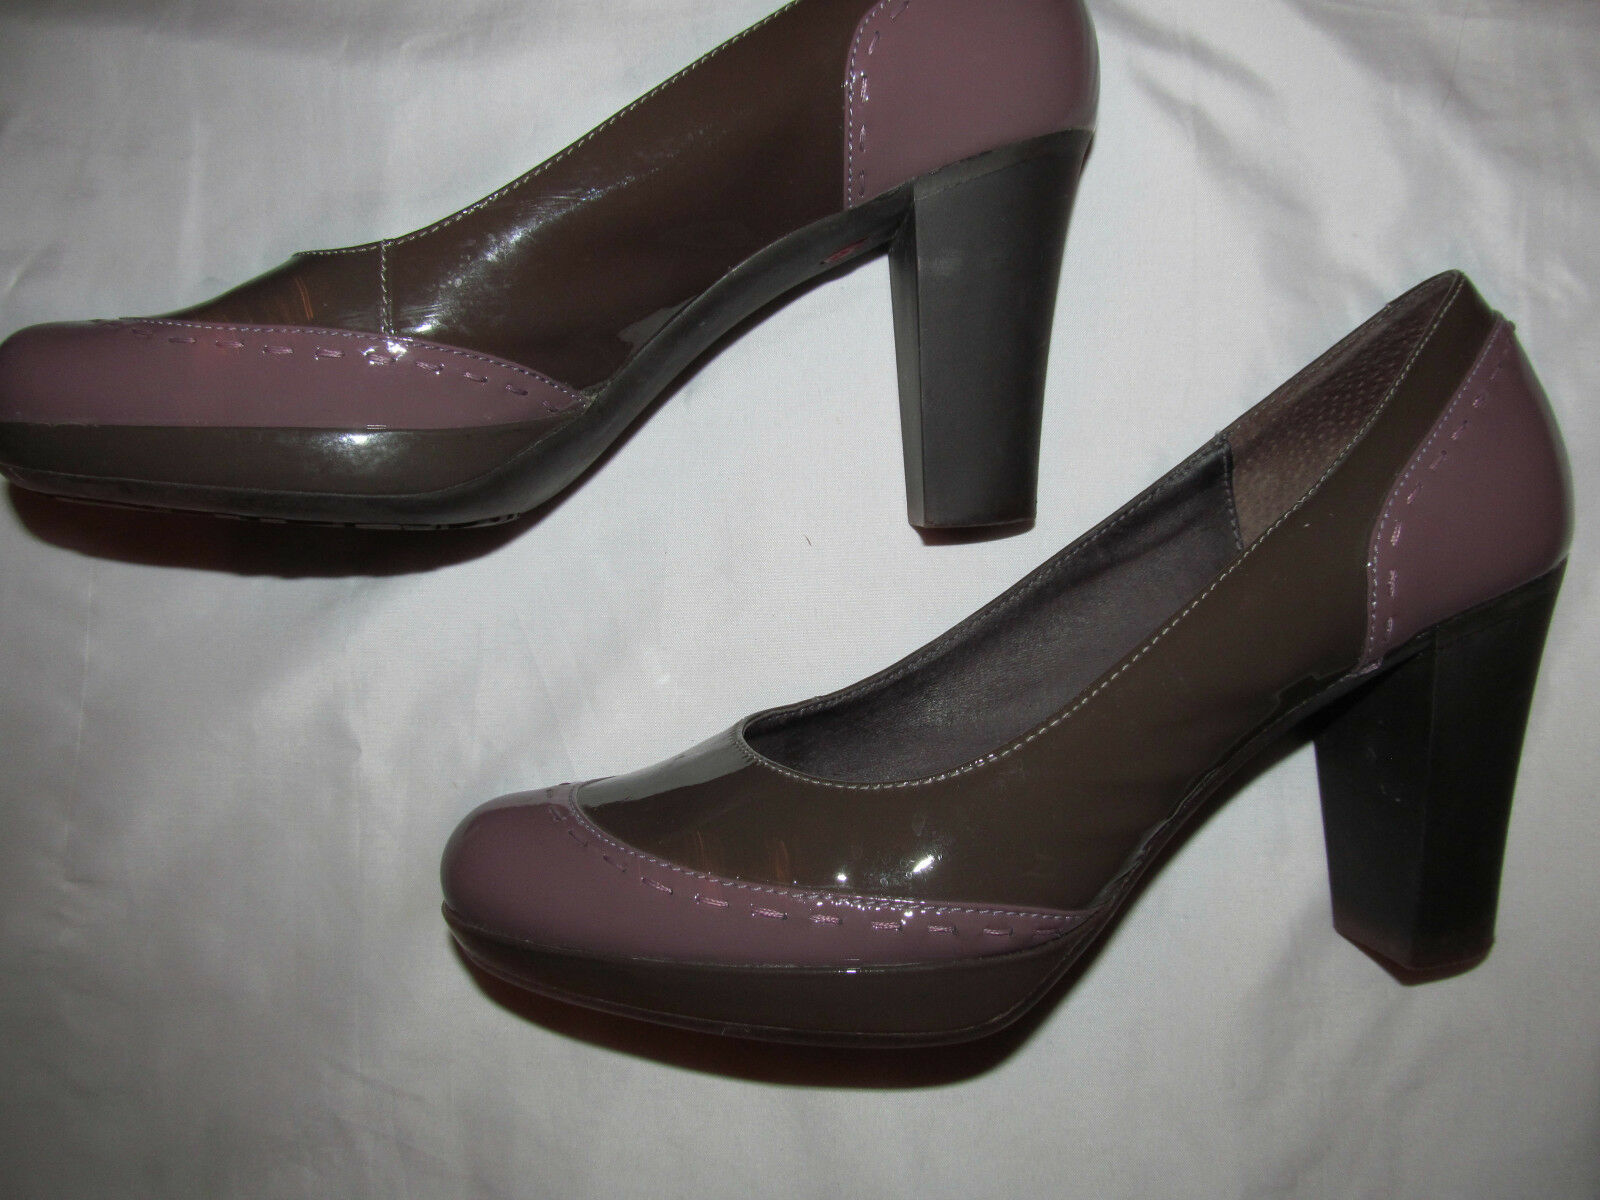 CAMPER ARIADNA taupe Braun and purple court patent Leder pumps schuhe 38 8 M